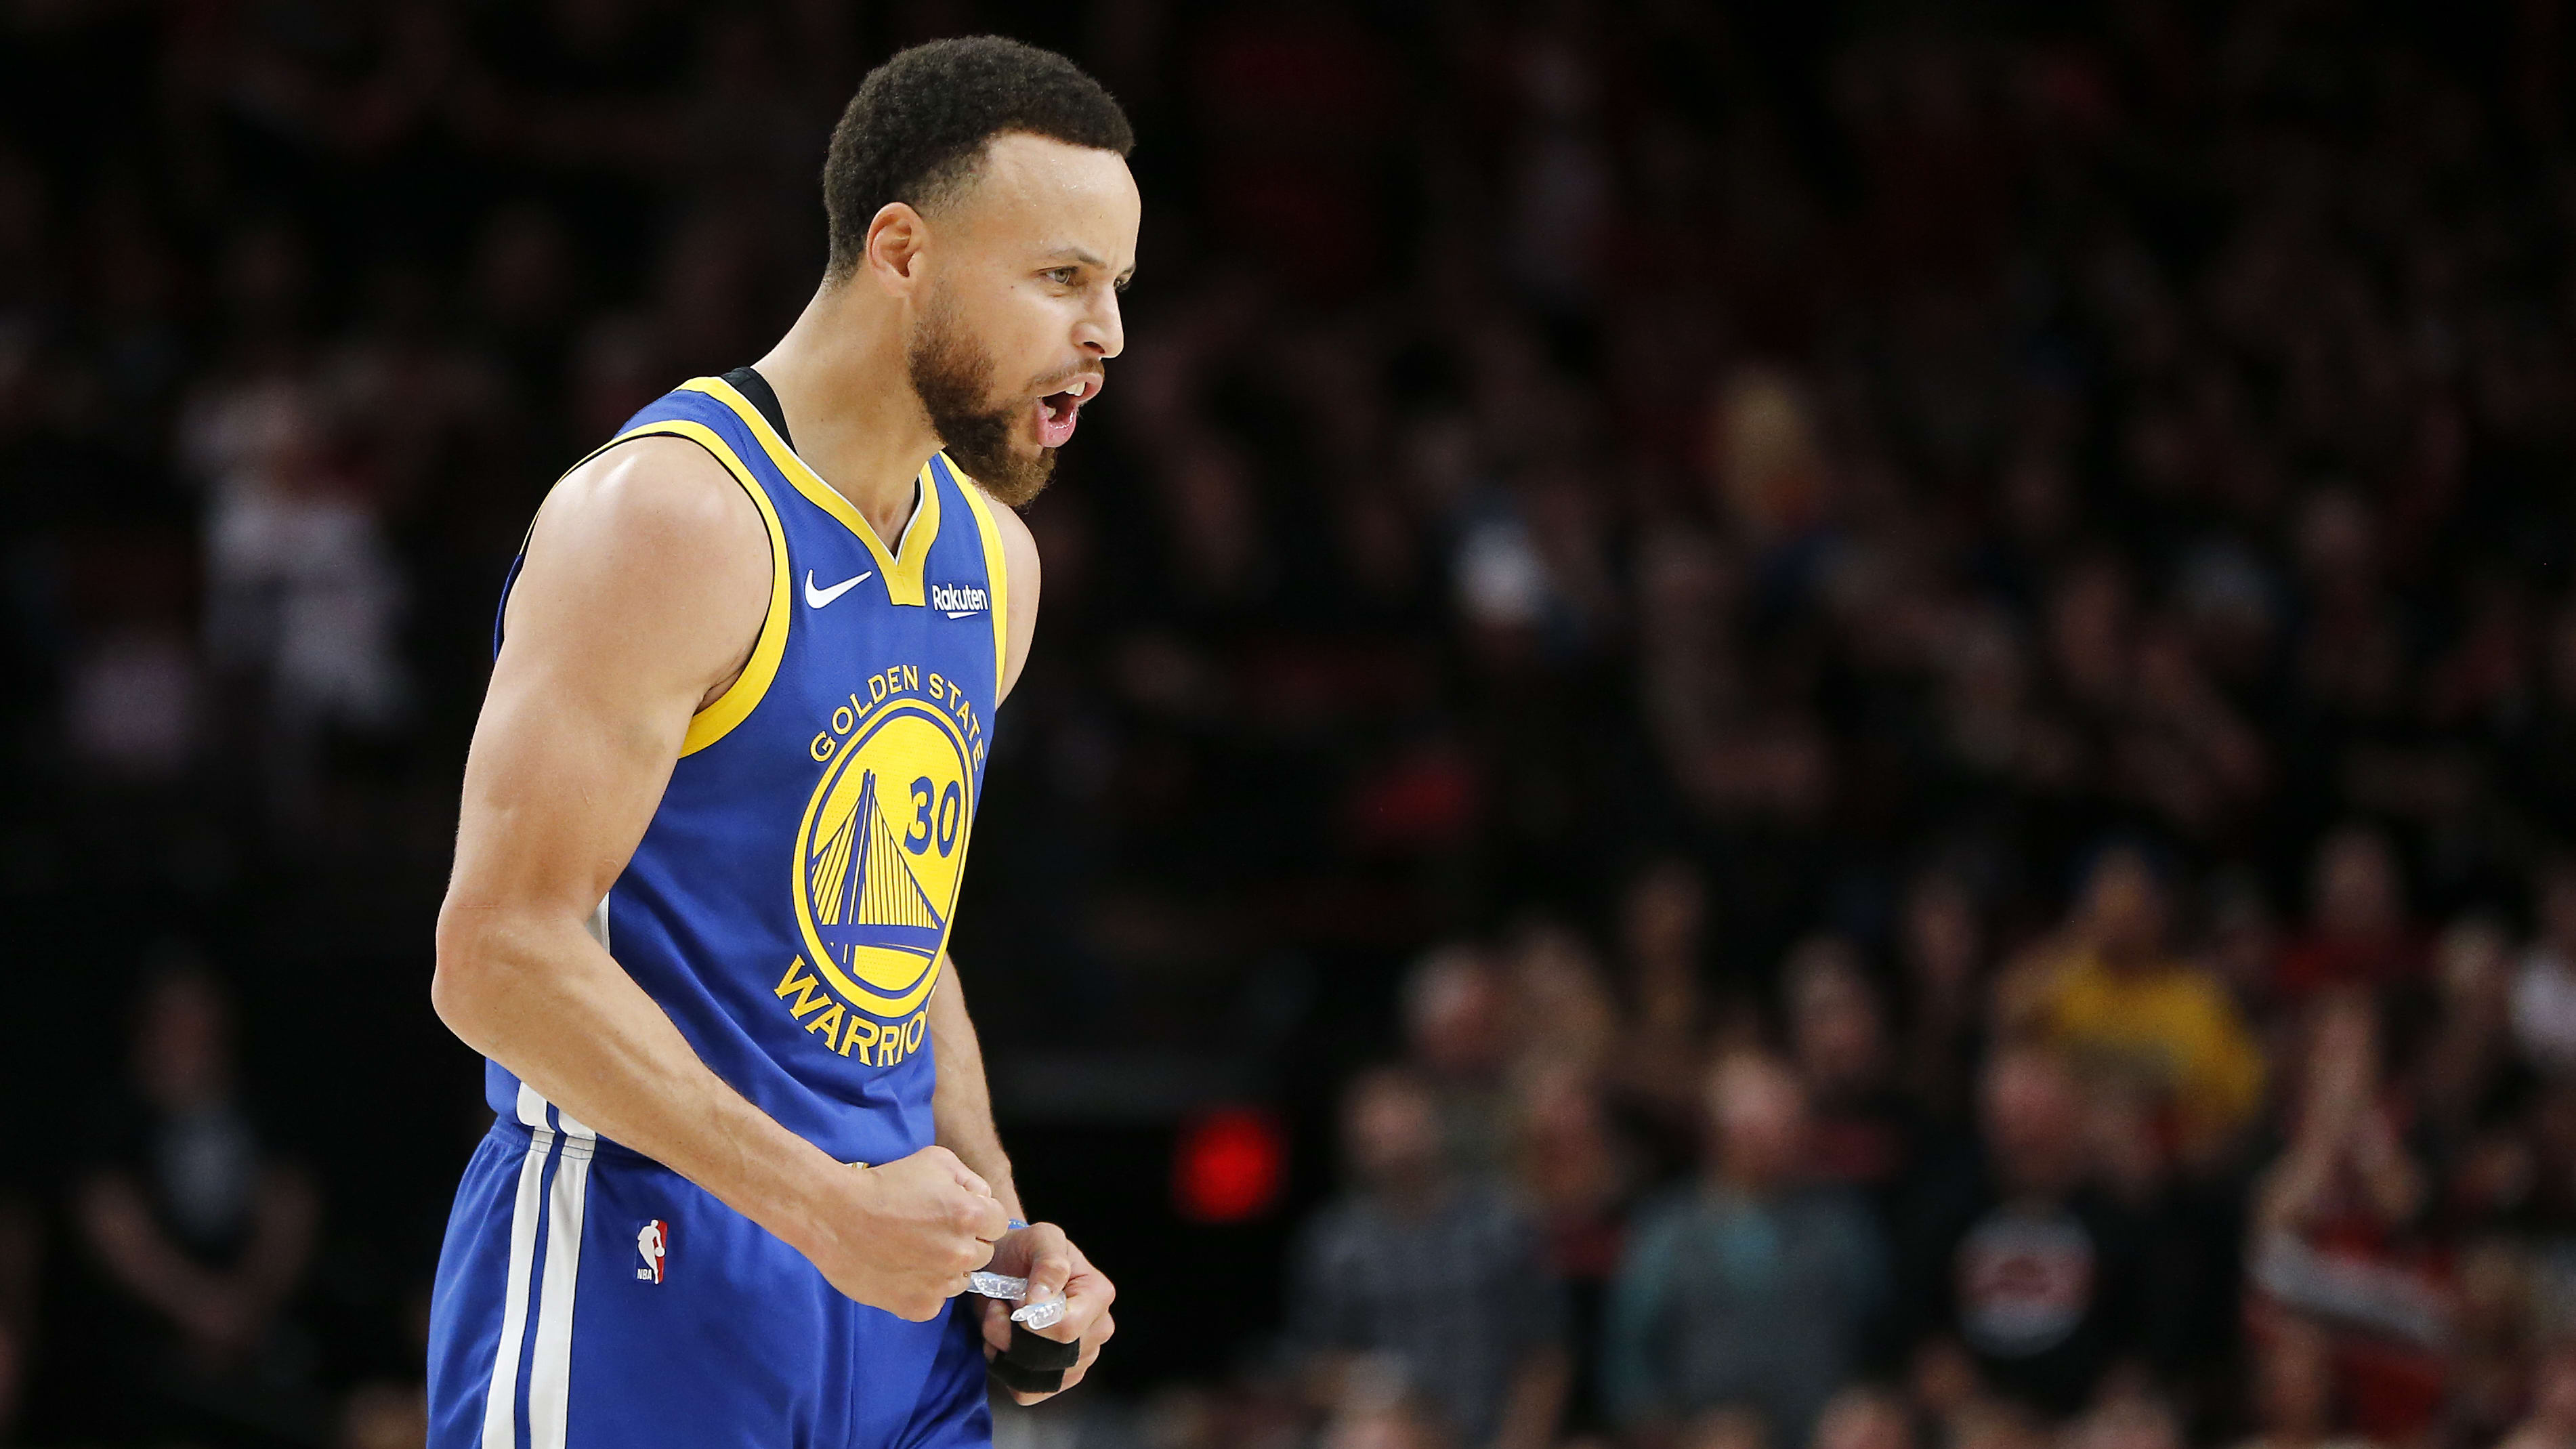 PORTLAND, OREGON - MAY 18: Stephen Curry #30 of the Golden State Warriors reacts during the second half against the Portland Trail Blazers in game three of the NBA Western Conference Finals at Moda Center on May 18, 2019 in Portland, Oregon. NOTE TO USER: User expressly acknowledges and agrees that, by downloading and or using this photograph, User is consenting to the terms and conditions of the Getty Images License Agreement. (Photo by Jonathan Ferrey/Getty Images)